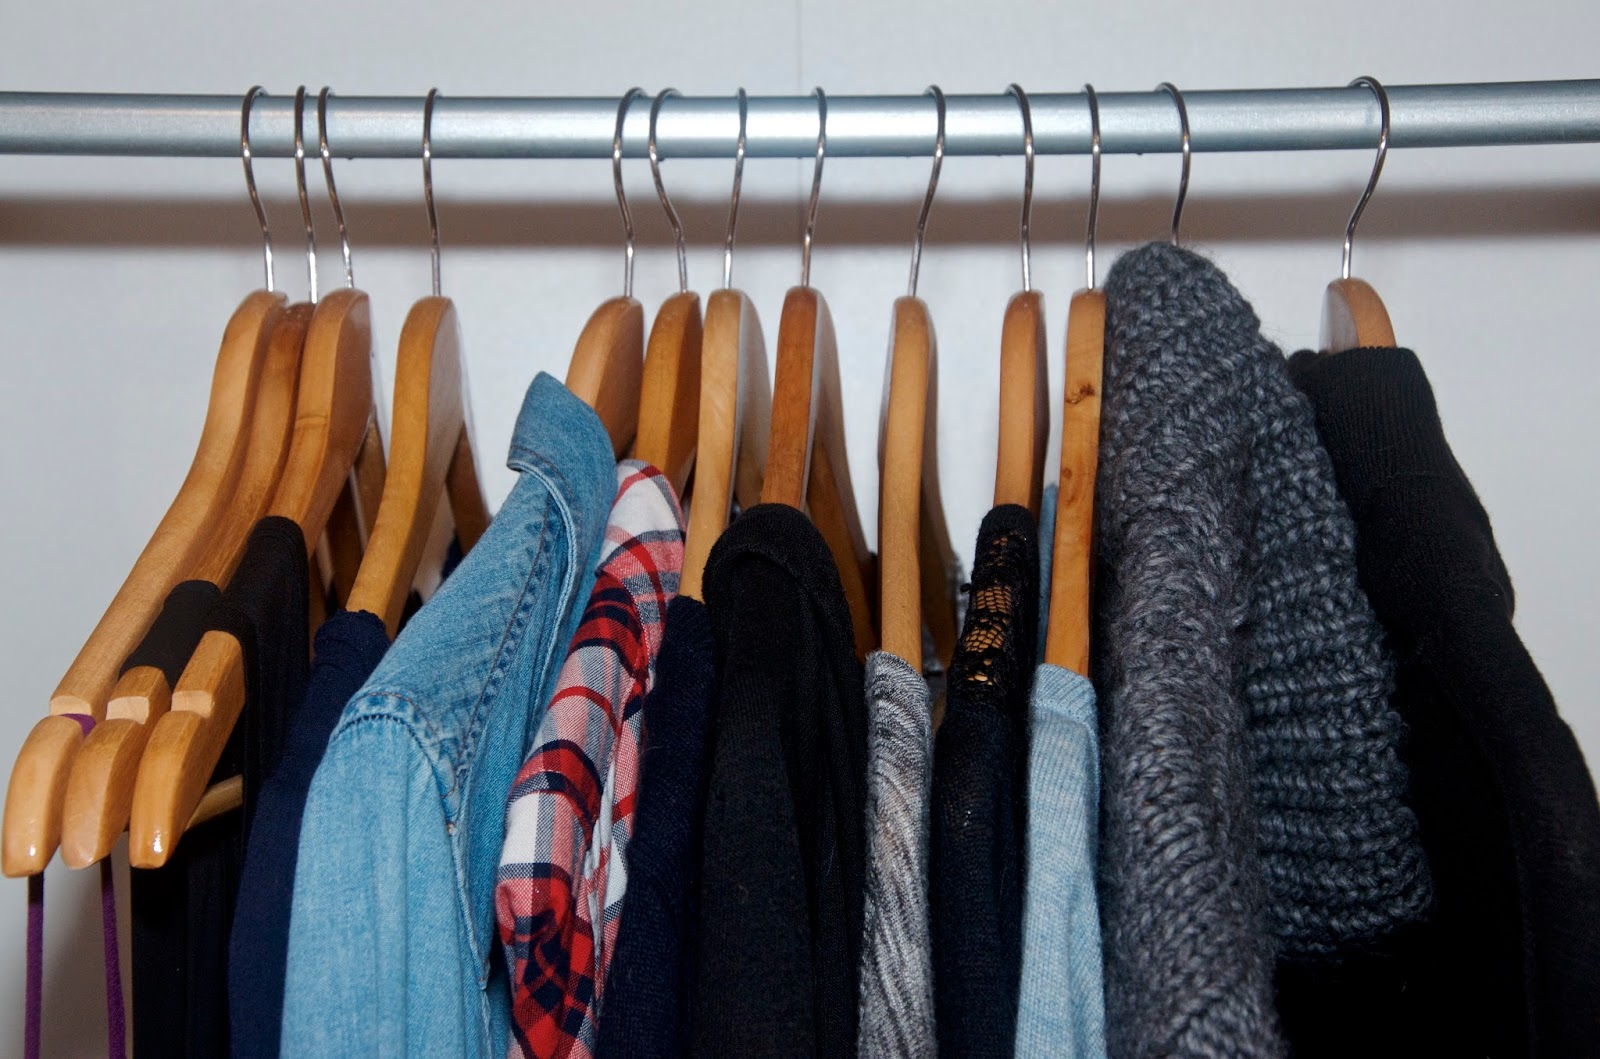 Closet with clothes on wooden hangers